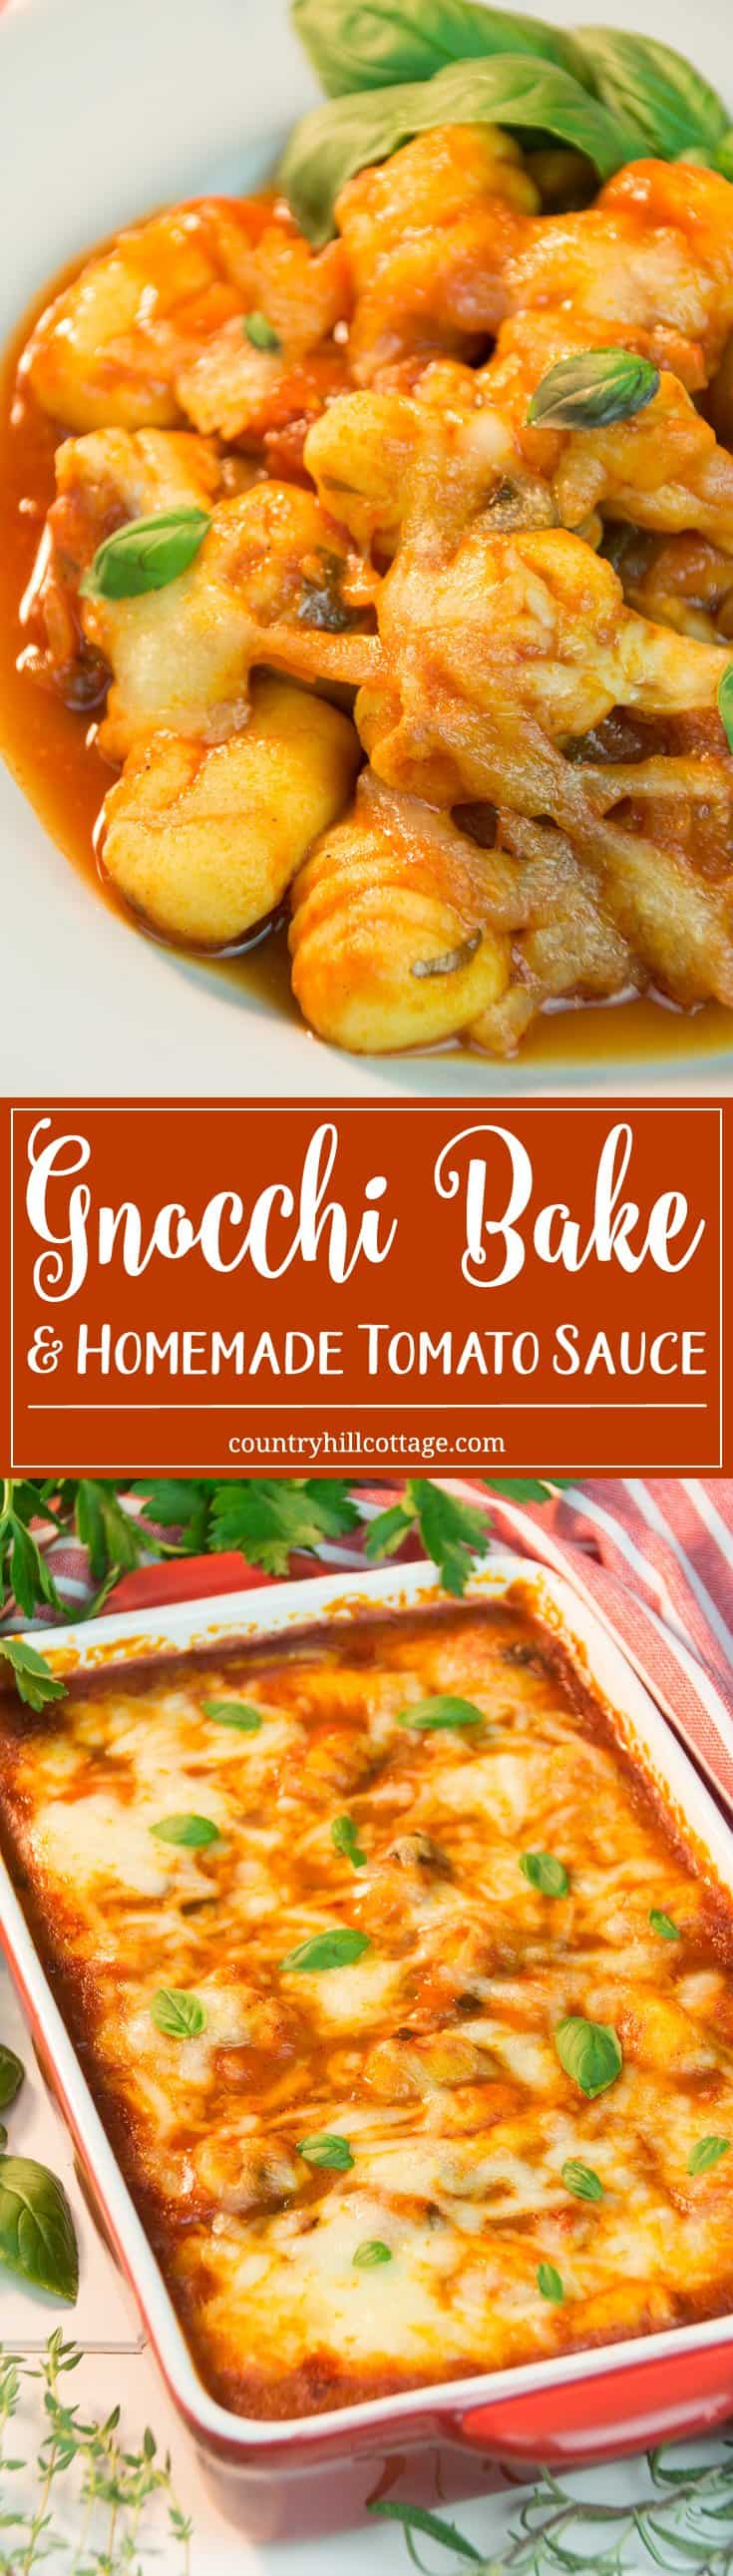 Dig into this delicious gnocchi bake with a quick homemade tomato sauce! Tasty Italian gnocchi meet a tasty, herb-seasoned tomato sauce meets a thick layer of melted mozzarella and cheddar. #tomatoes #gnocchi #midweekdinner | countryhillcottage.com